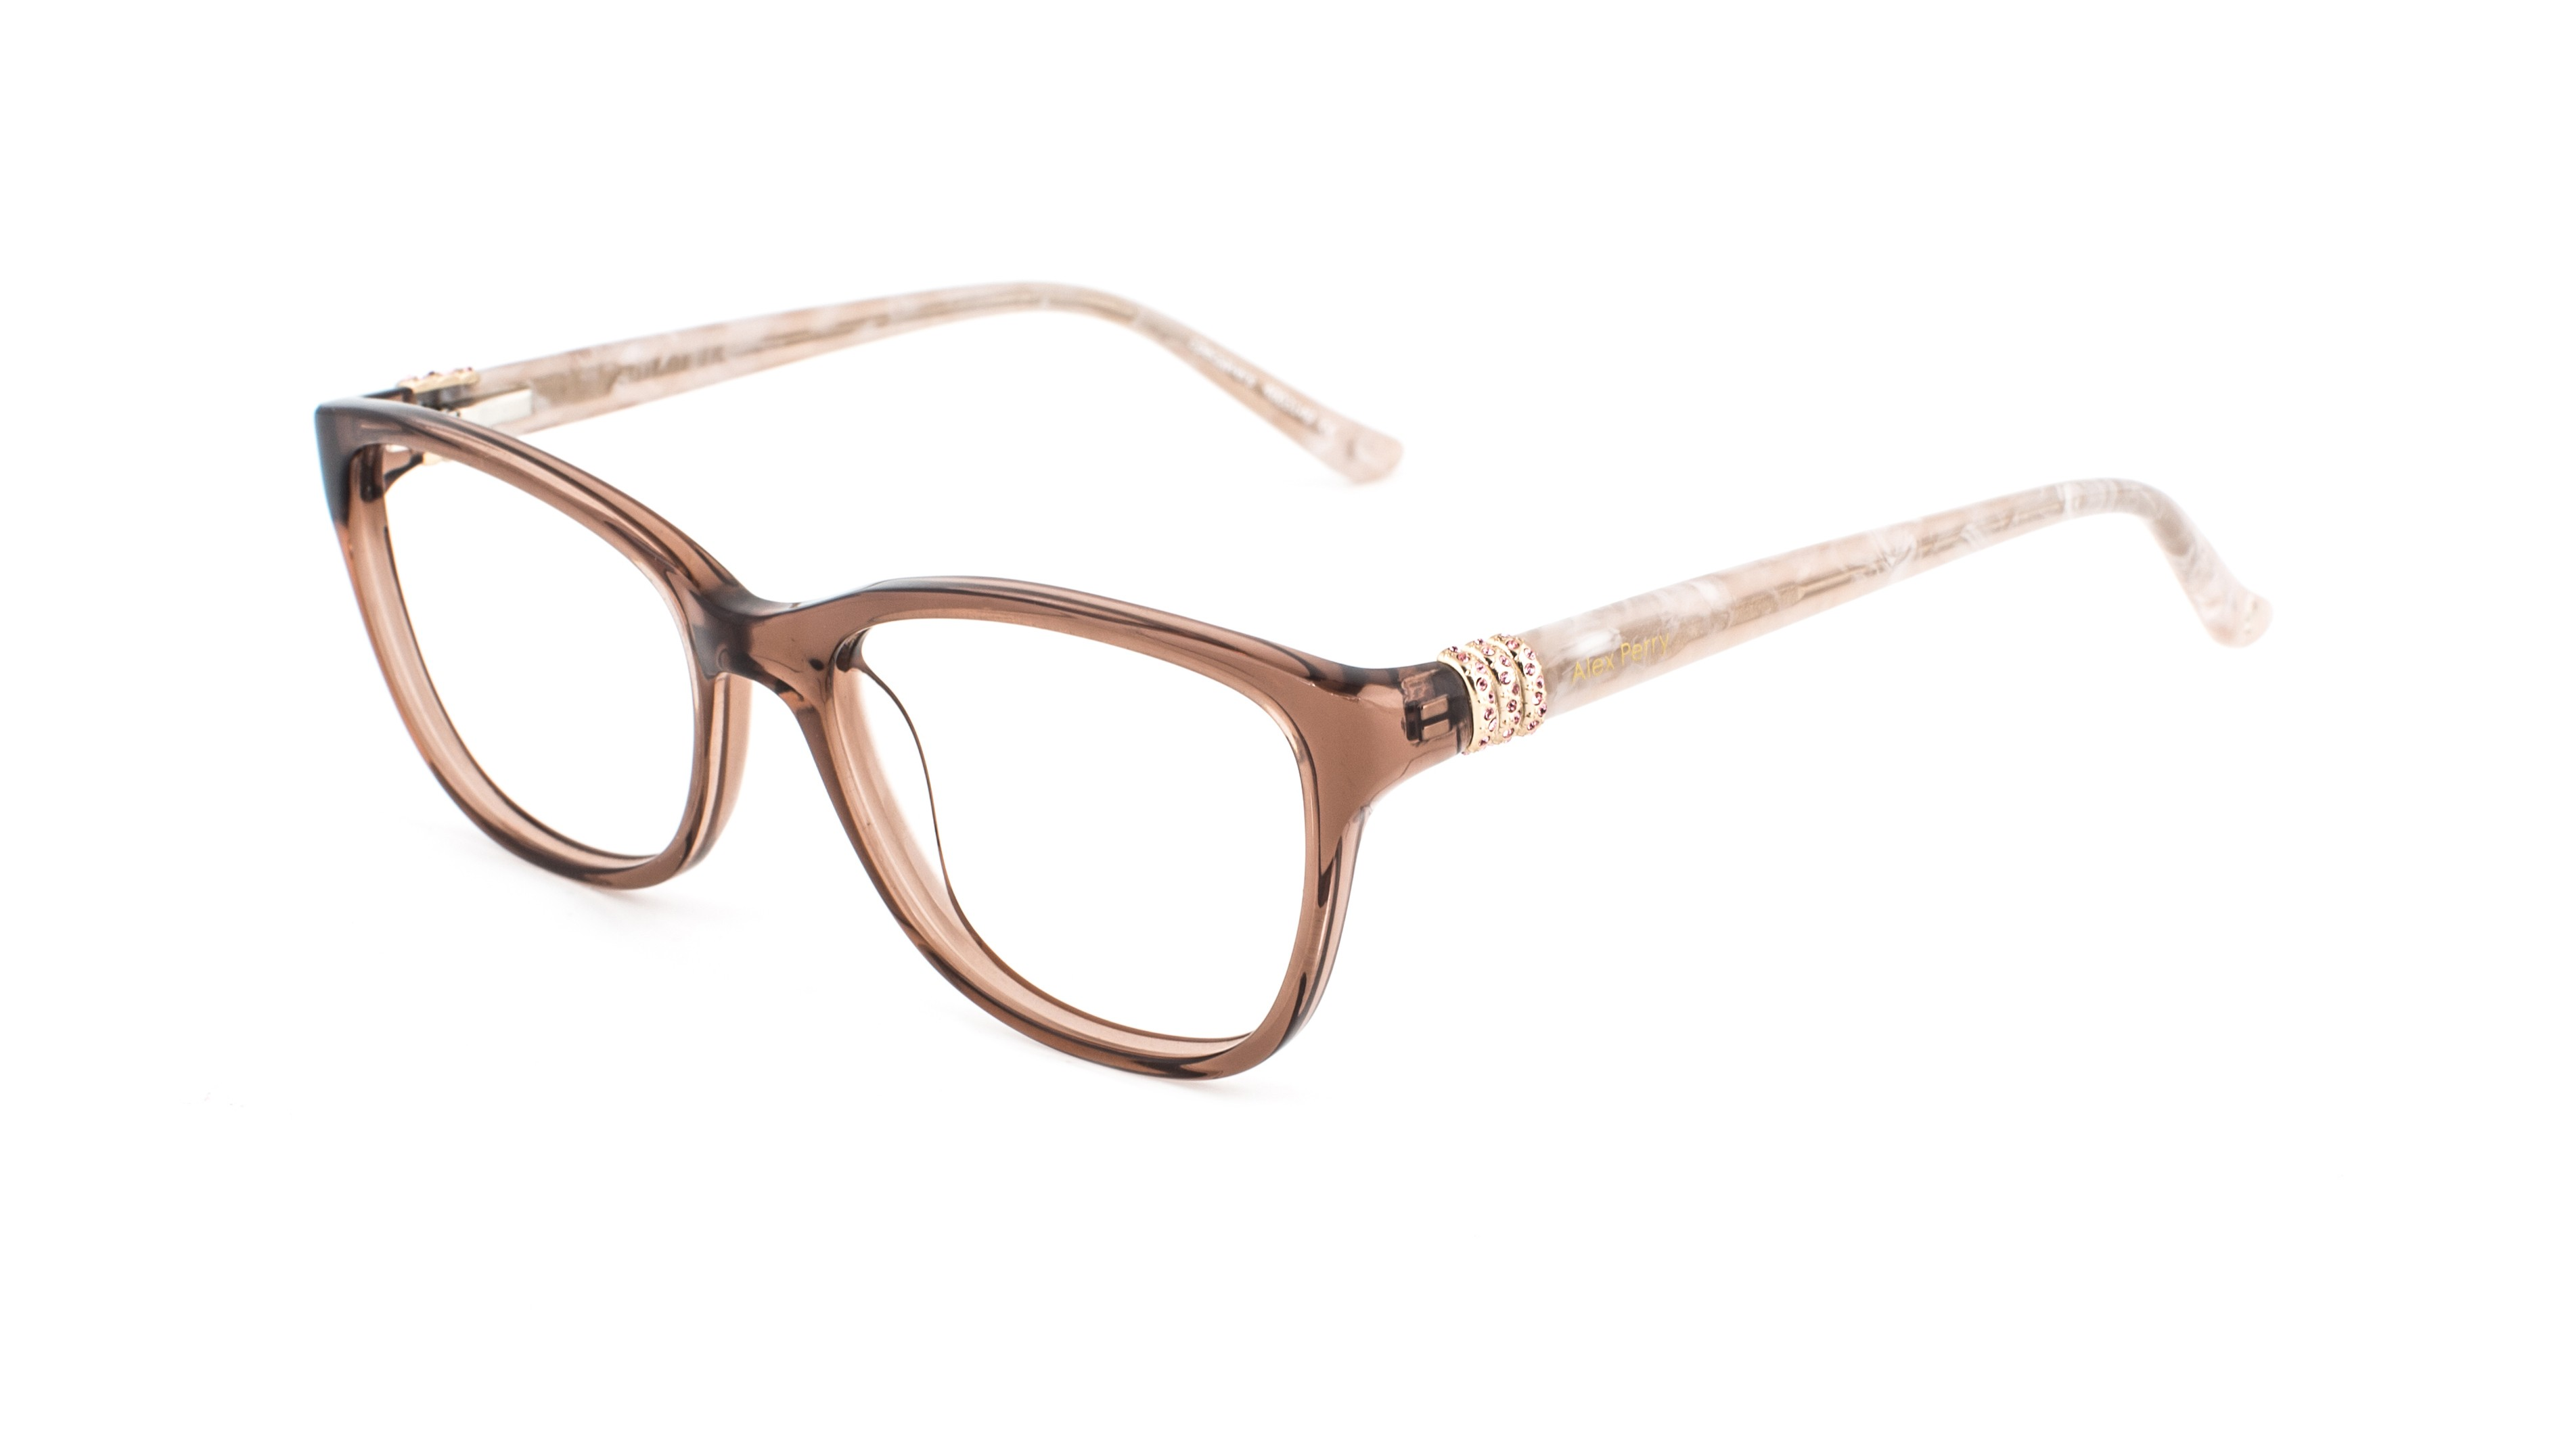 Eyeglasses Frame Trends 2015 : Eyeglass Frame Trends 2015